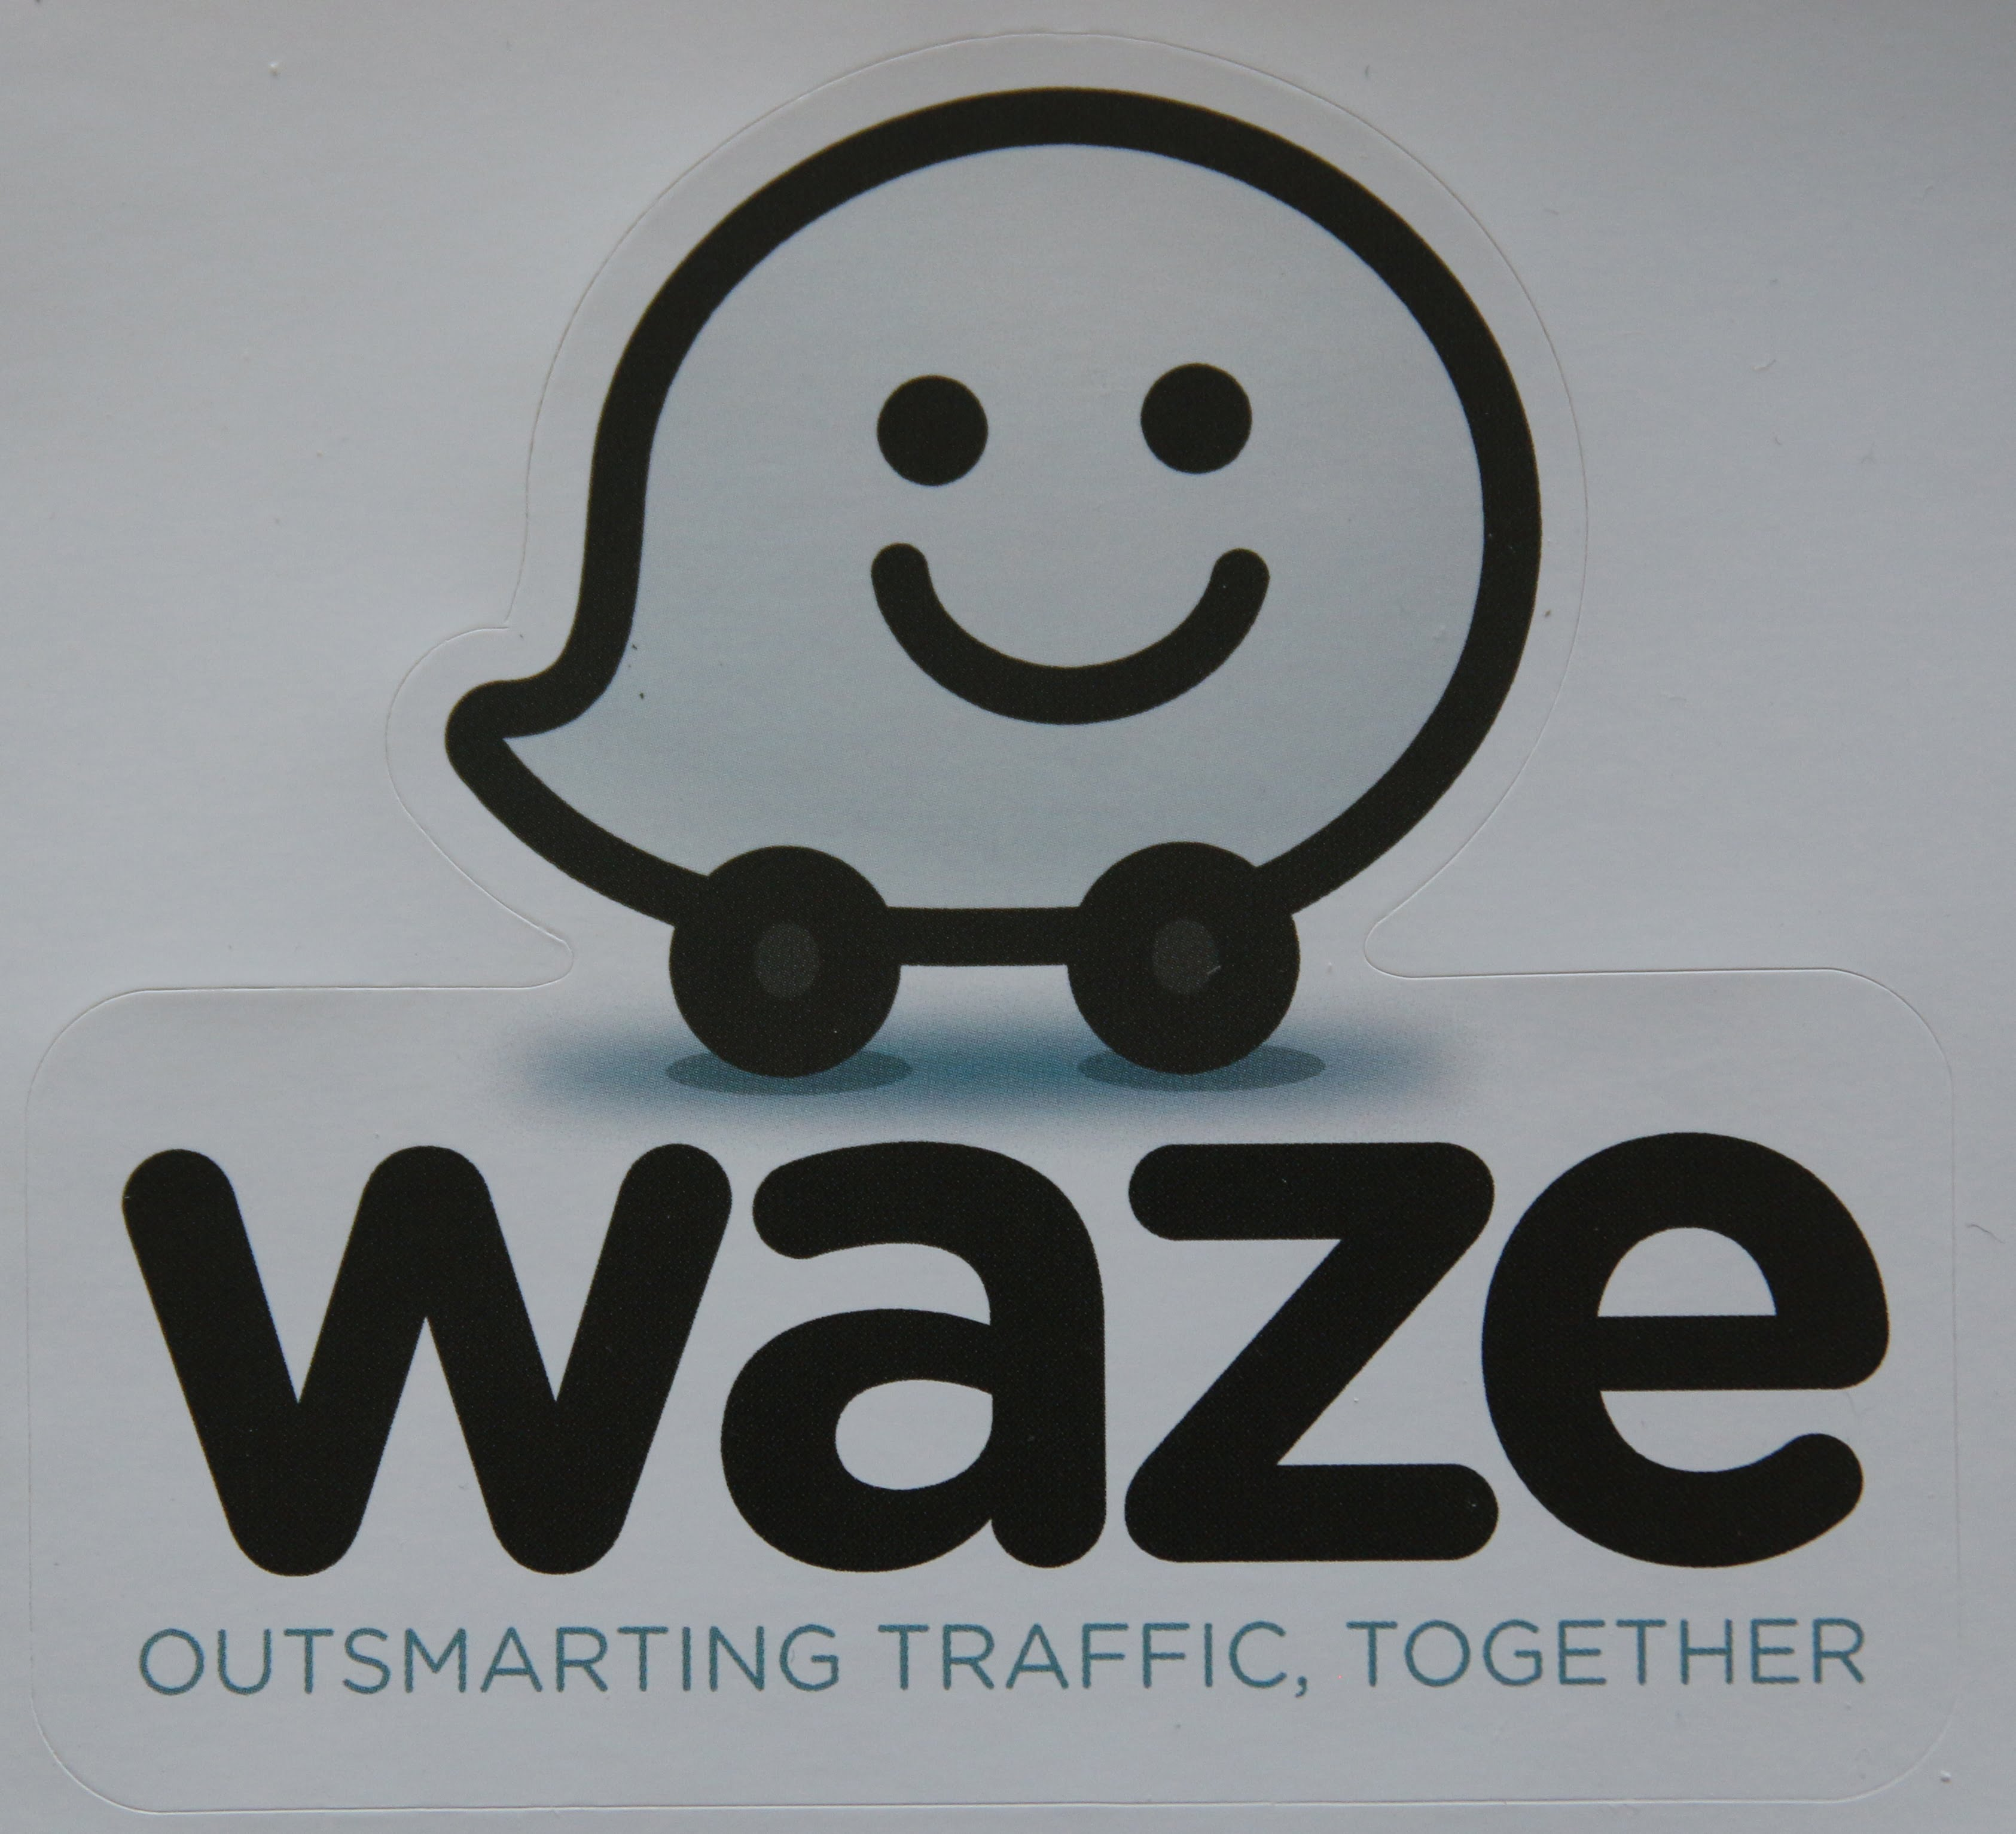 waze sticker waze belgium. Black Bedroom Furniture Sets. Home Design Ideas